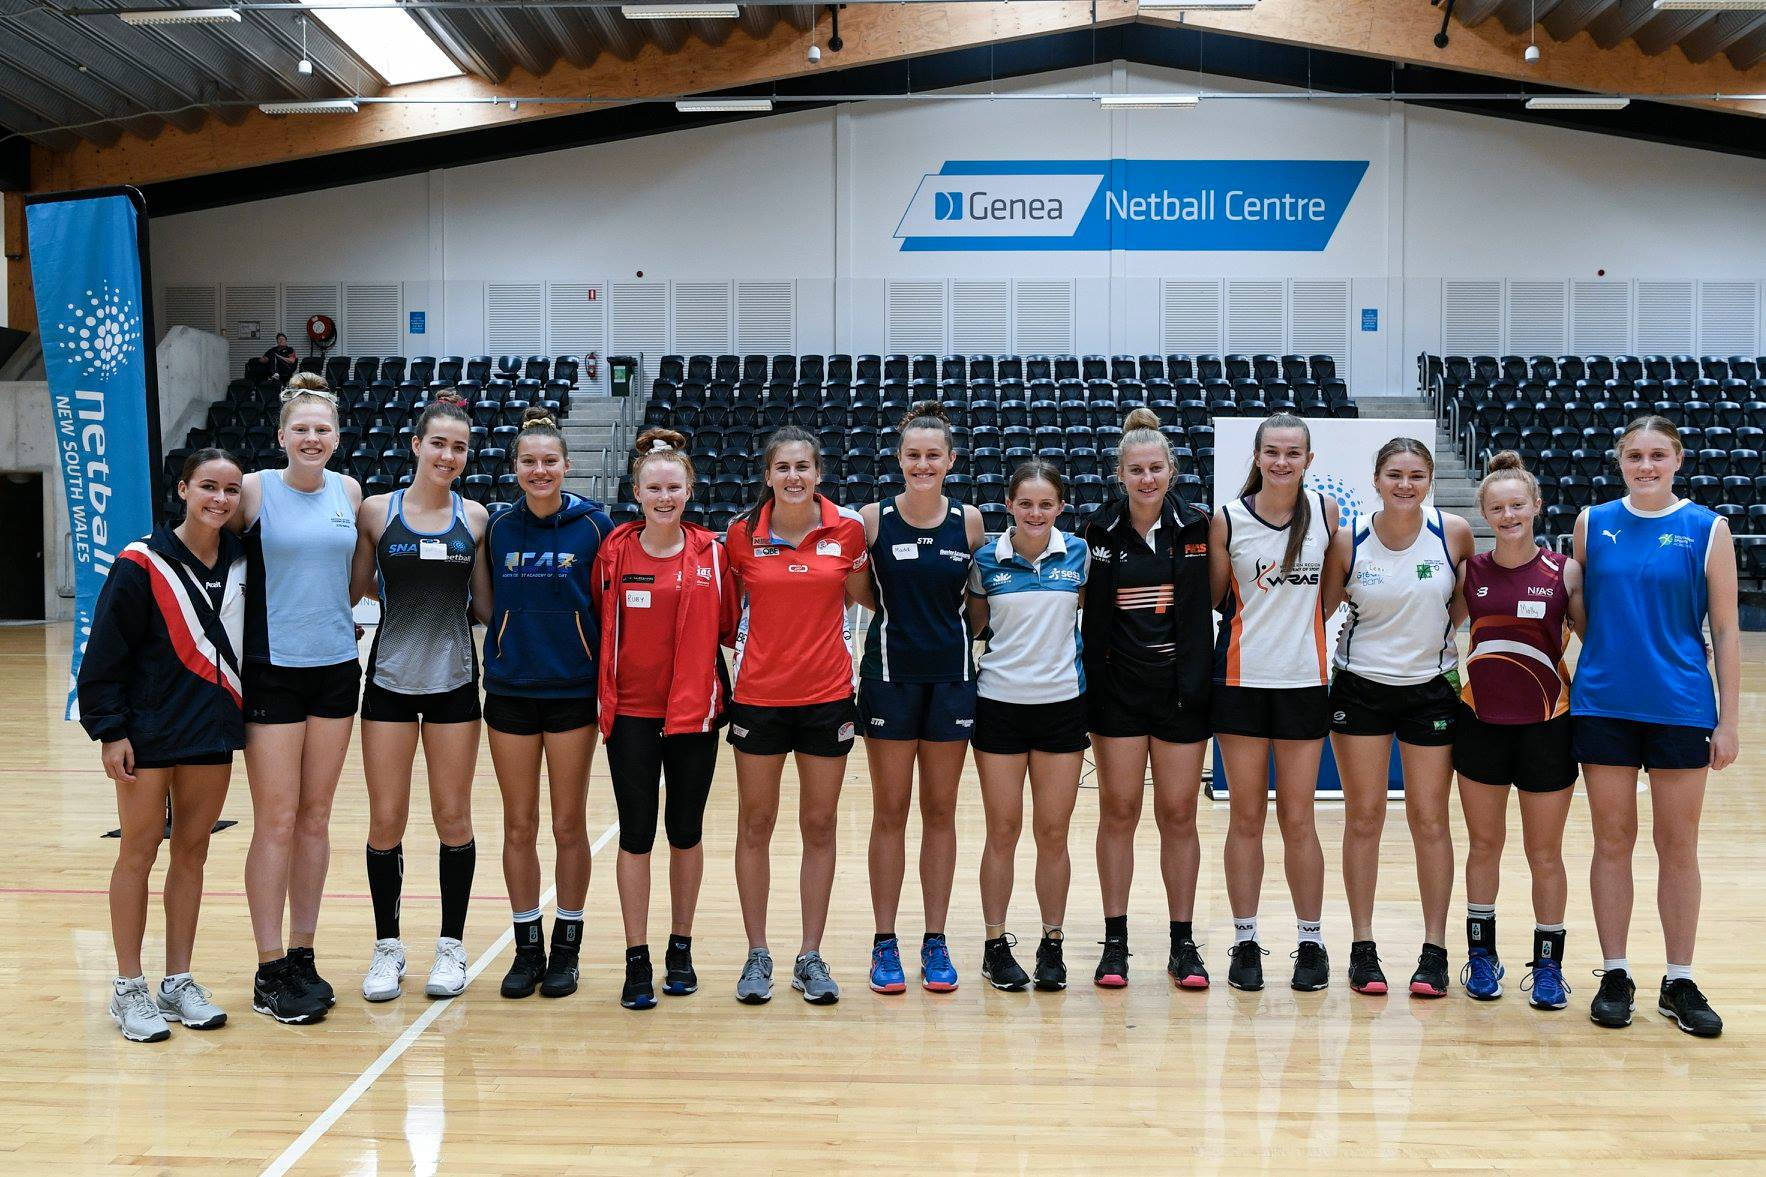 As part of planning for the future, 300 Netball NSW Pathway athletes and umpires years converged on Netball Central at the weekend to take part in the 2019 High Performance Camp.